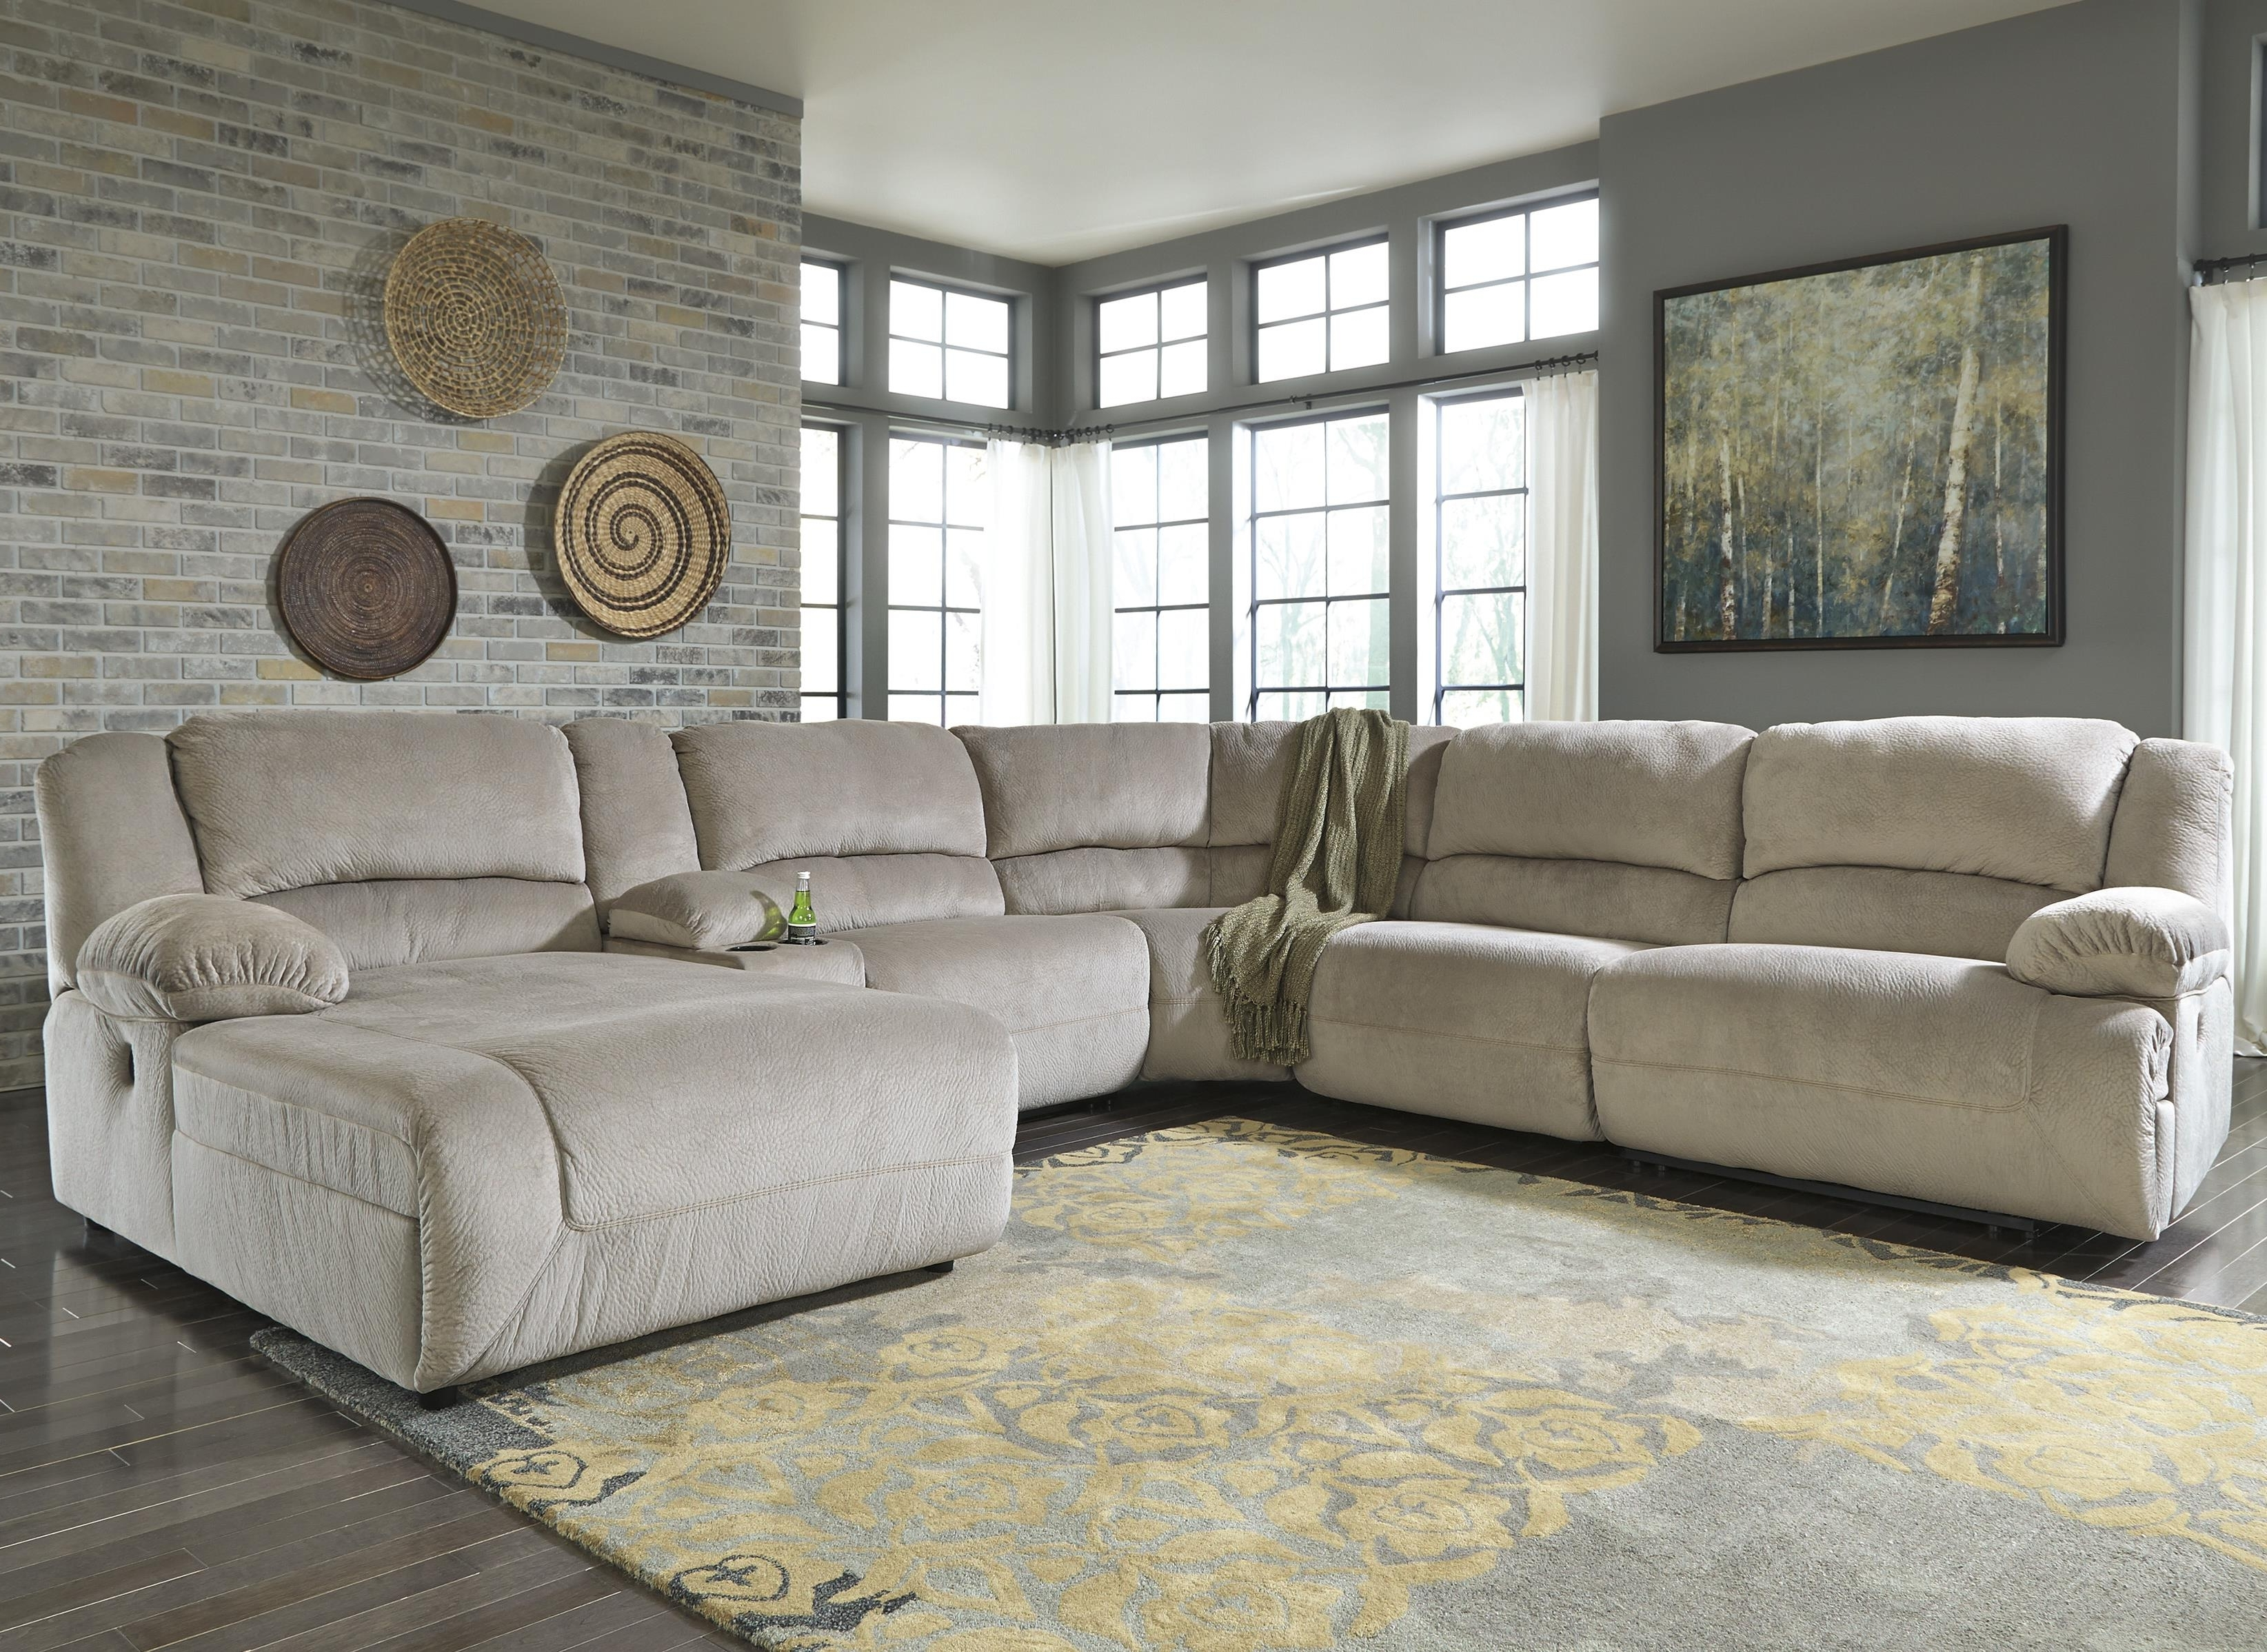 Fashionable Sectional Couches With Recliner And Chaise Intended For Reclining Sectional With Console & Right Press Back Chaise (View 3 of 15)